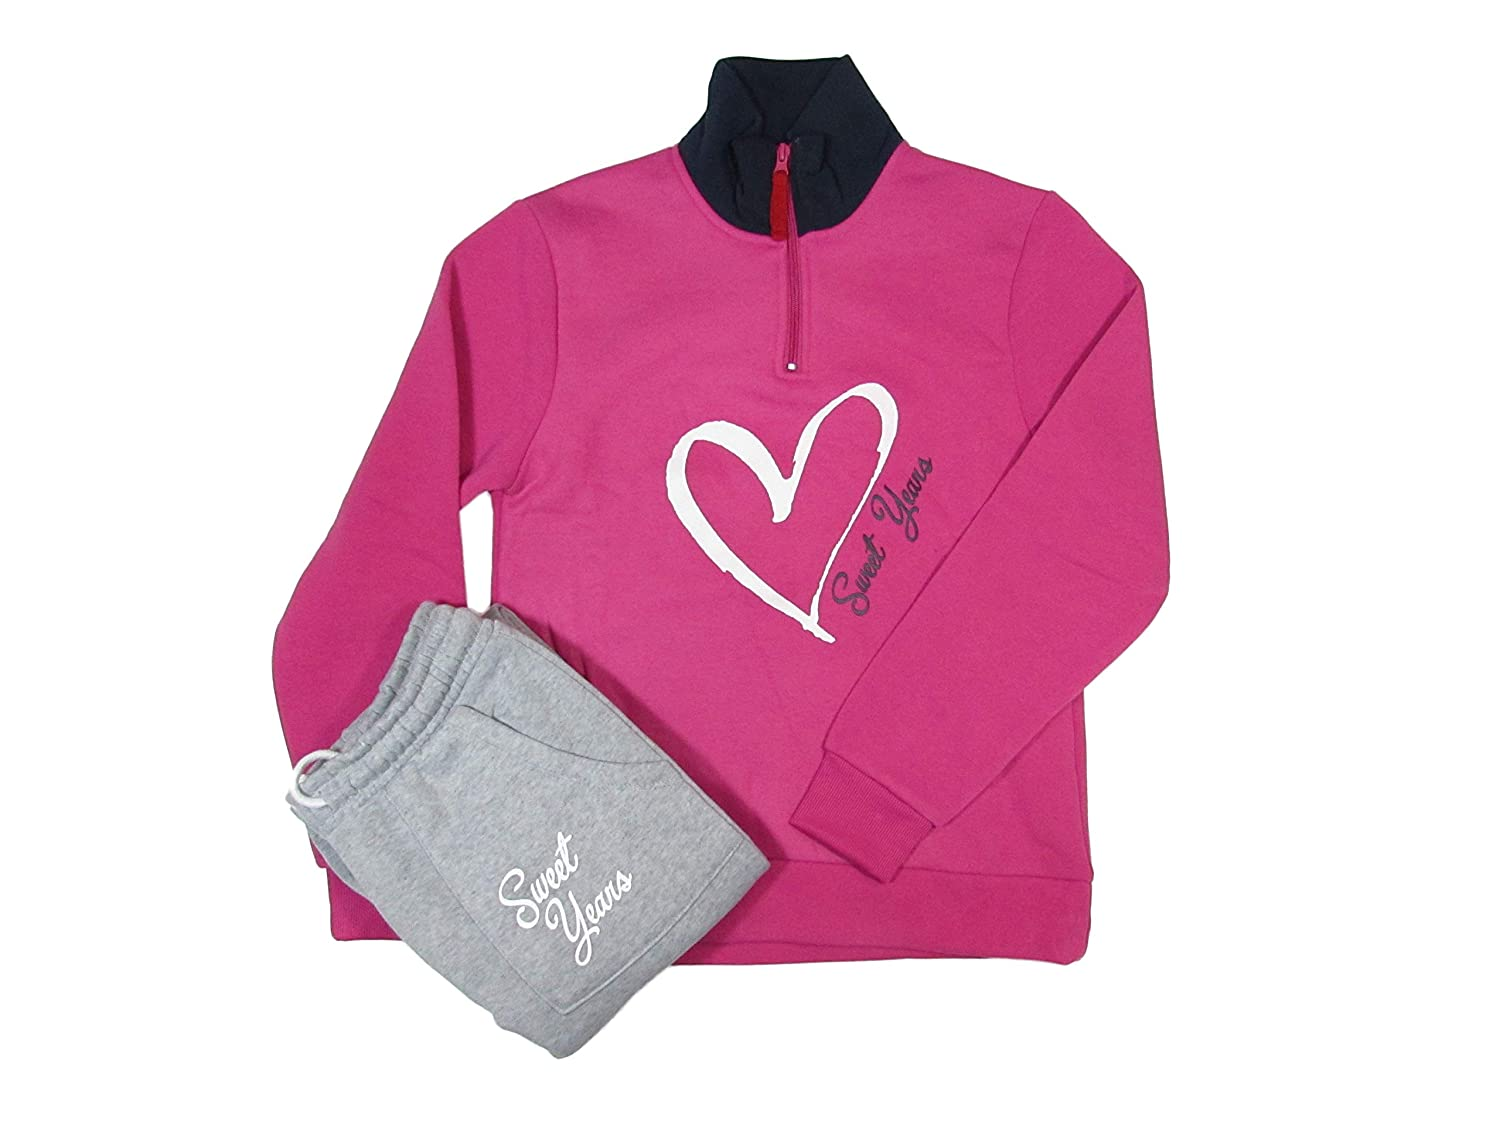 Sweet Years - Chándal - para Mujer Fucsia S: Amazon.es: Ropa y ...